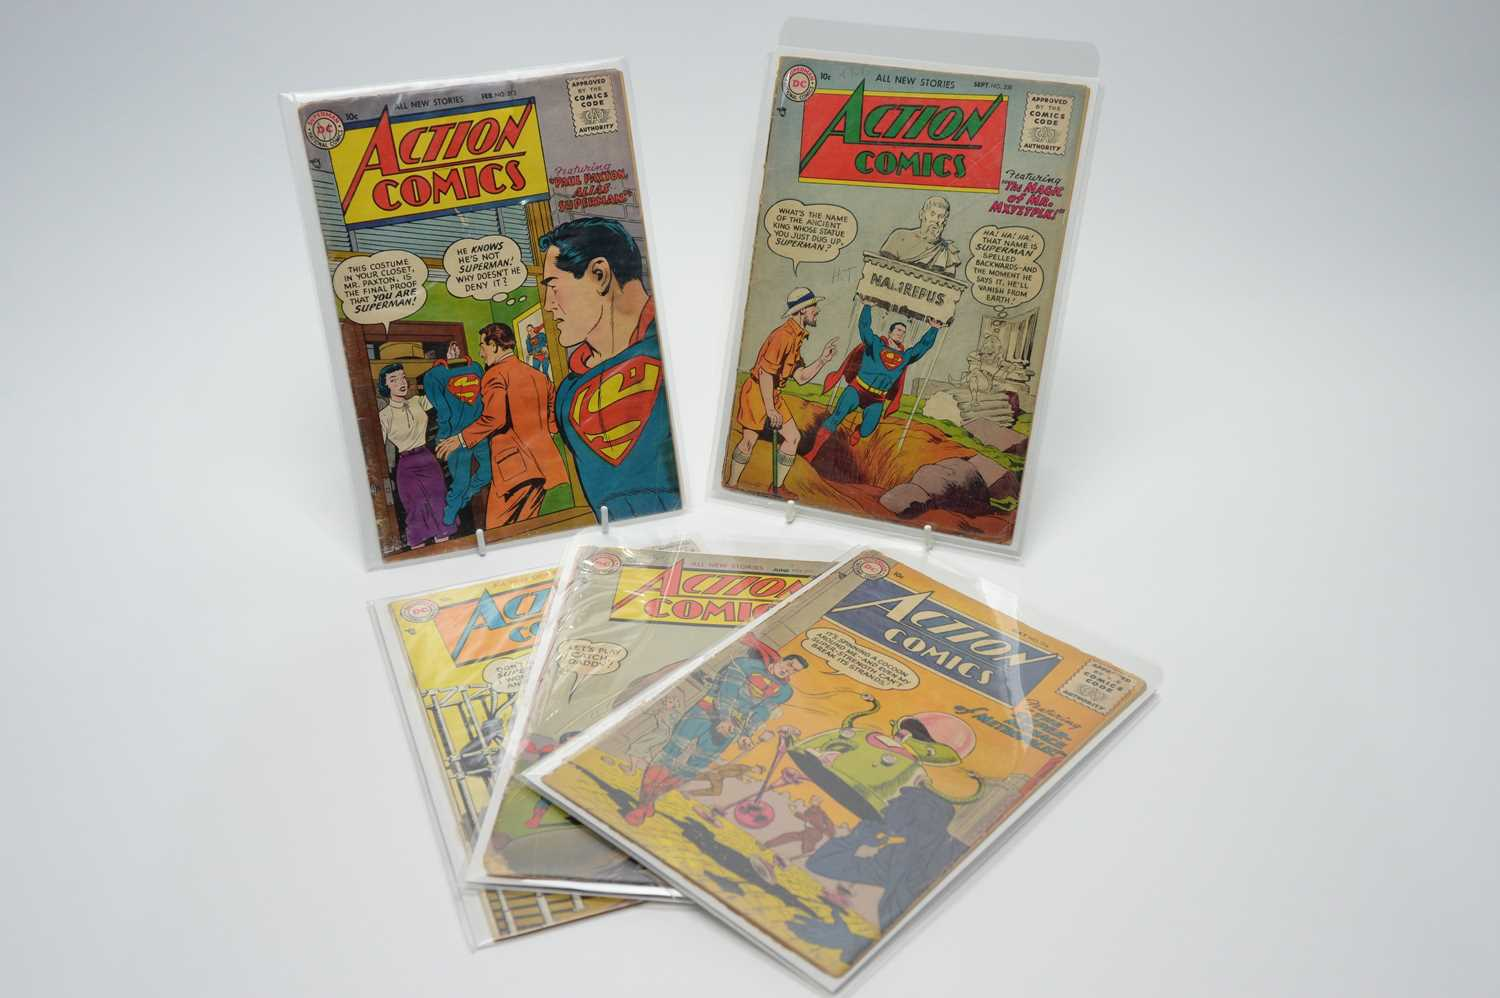 Lot 13 - Action Comics by DC.